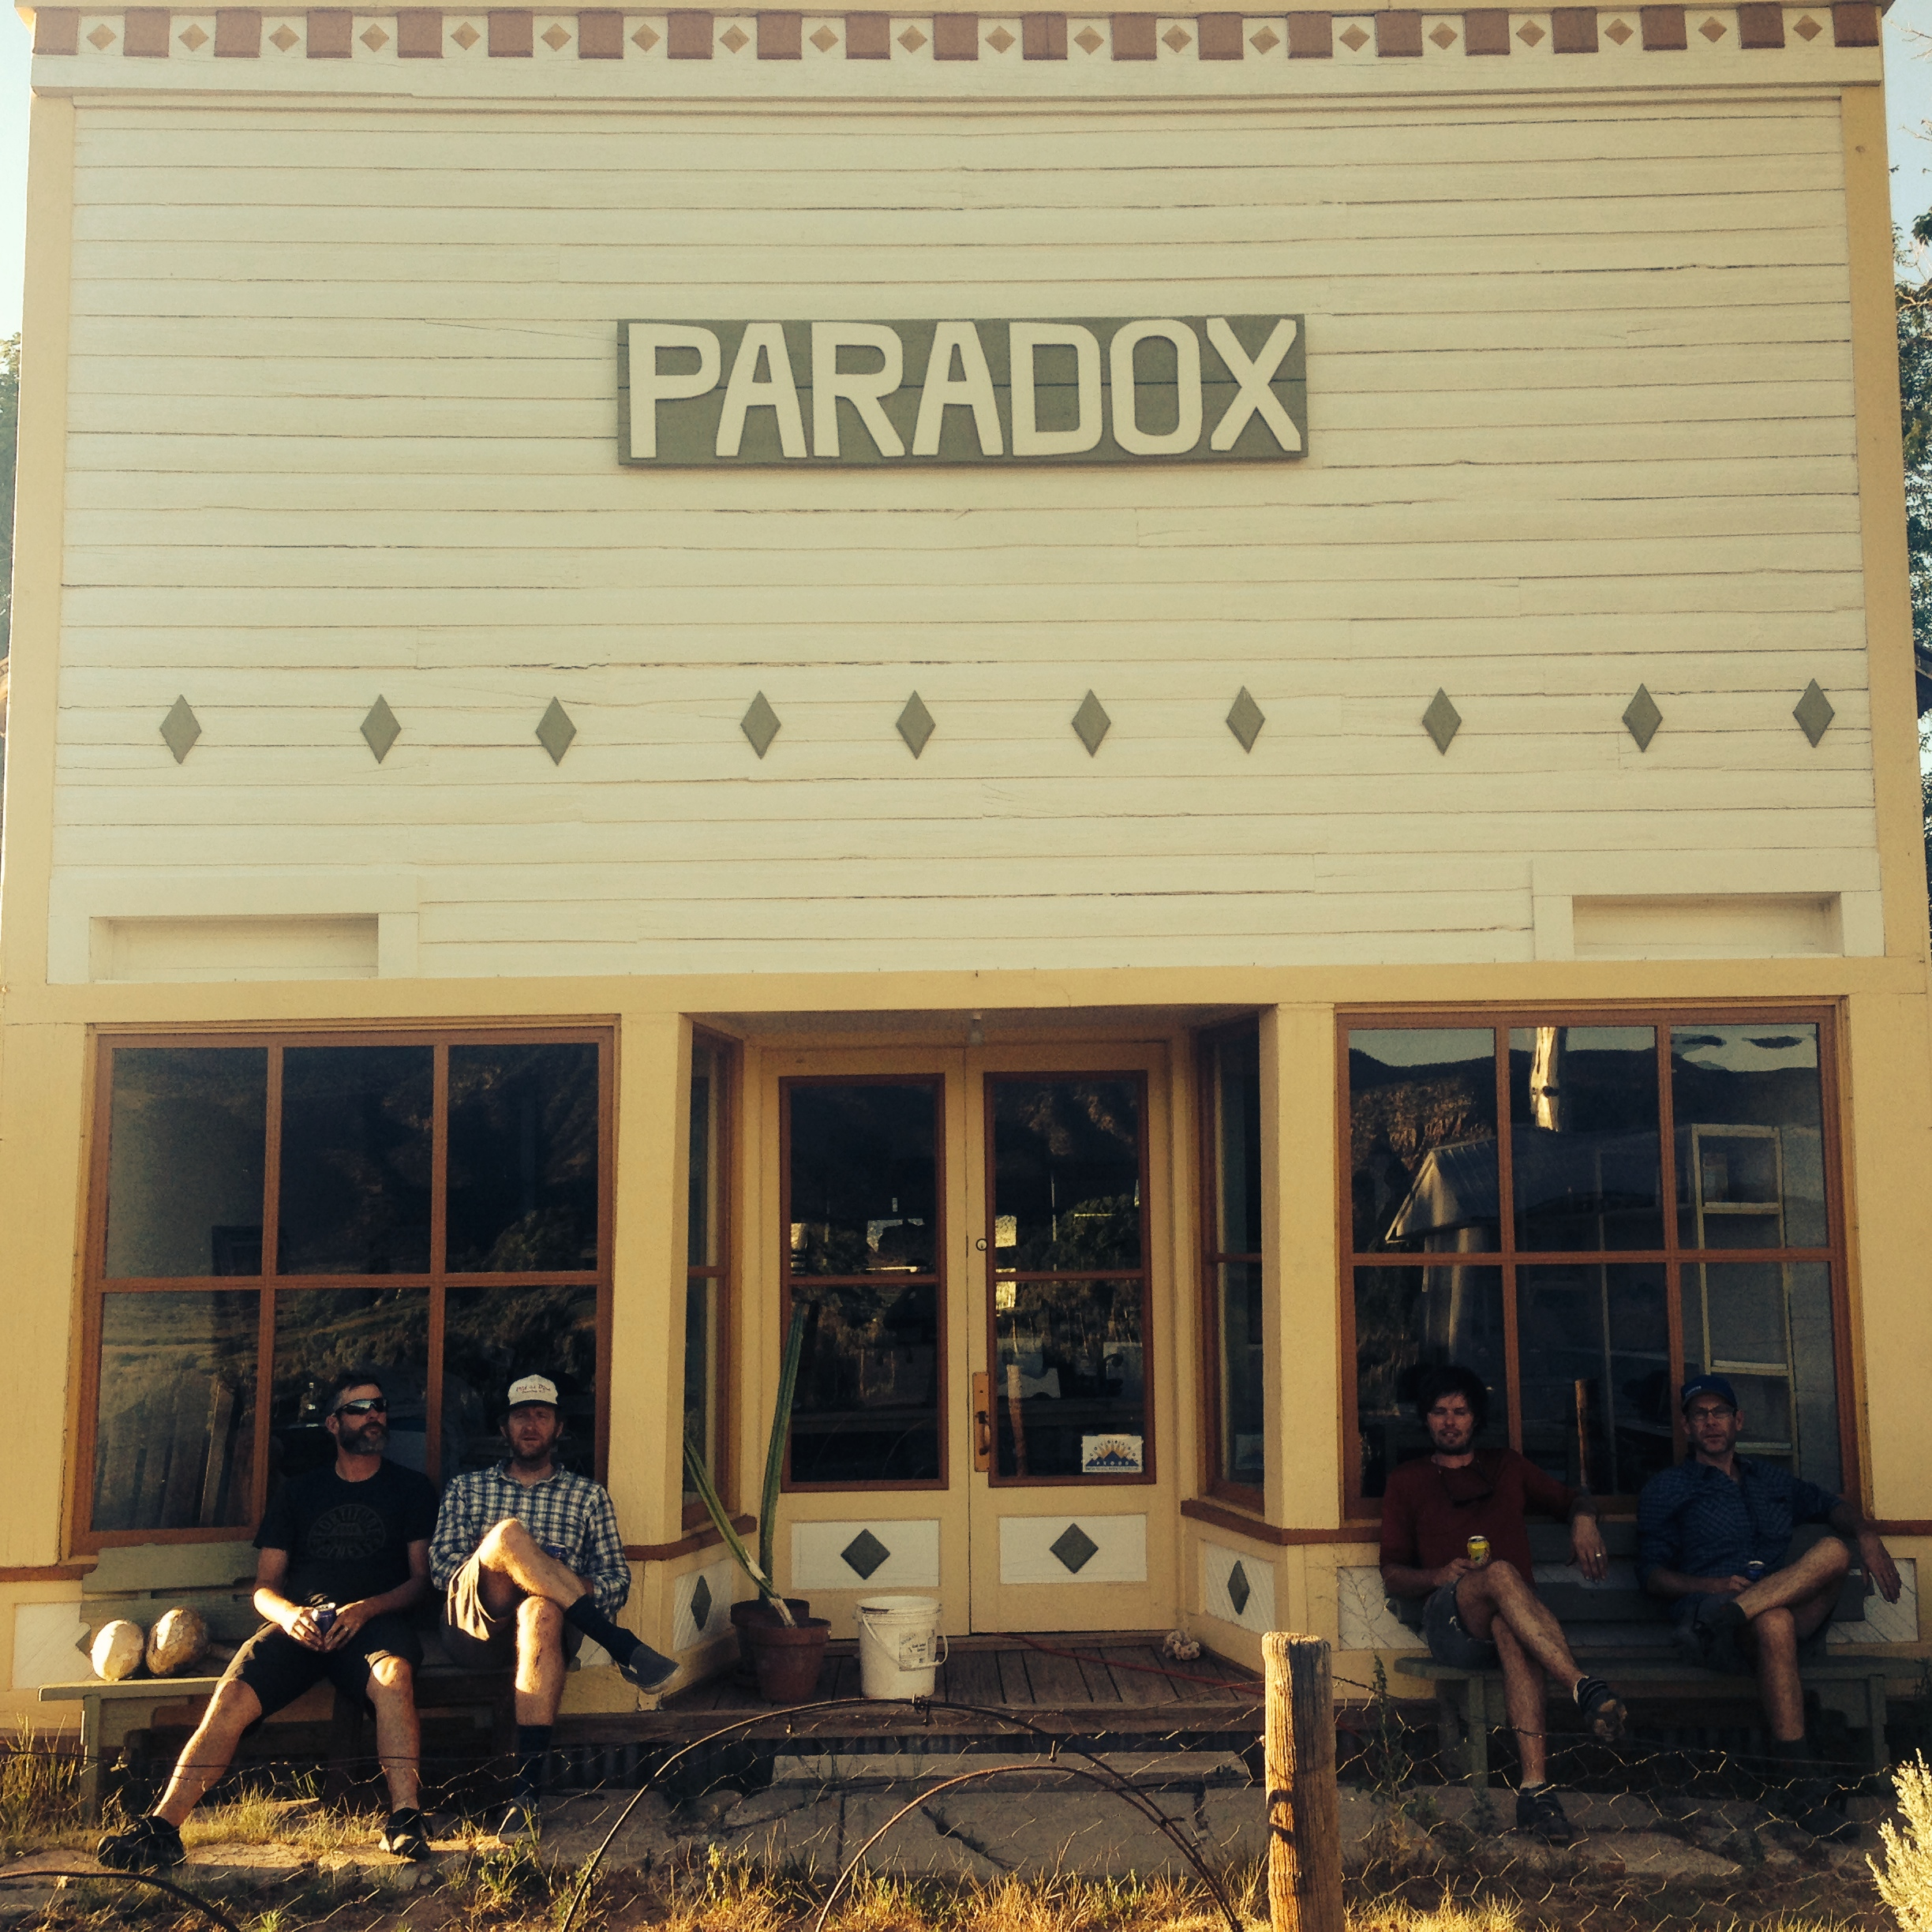 A welcome respite in the desert: The Paradox Cafe